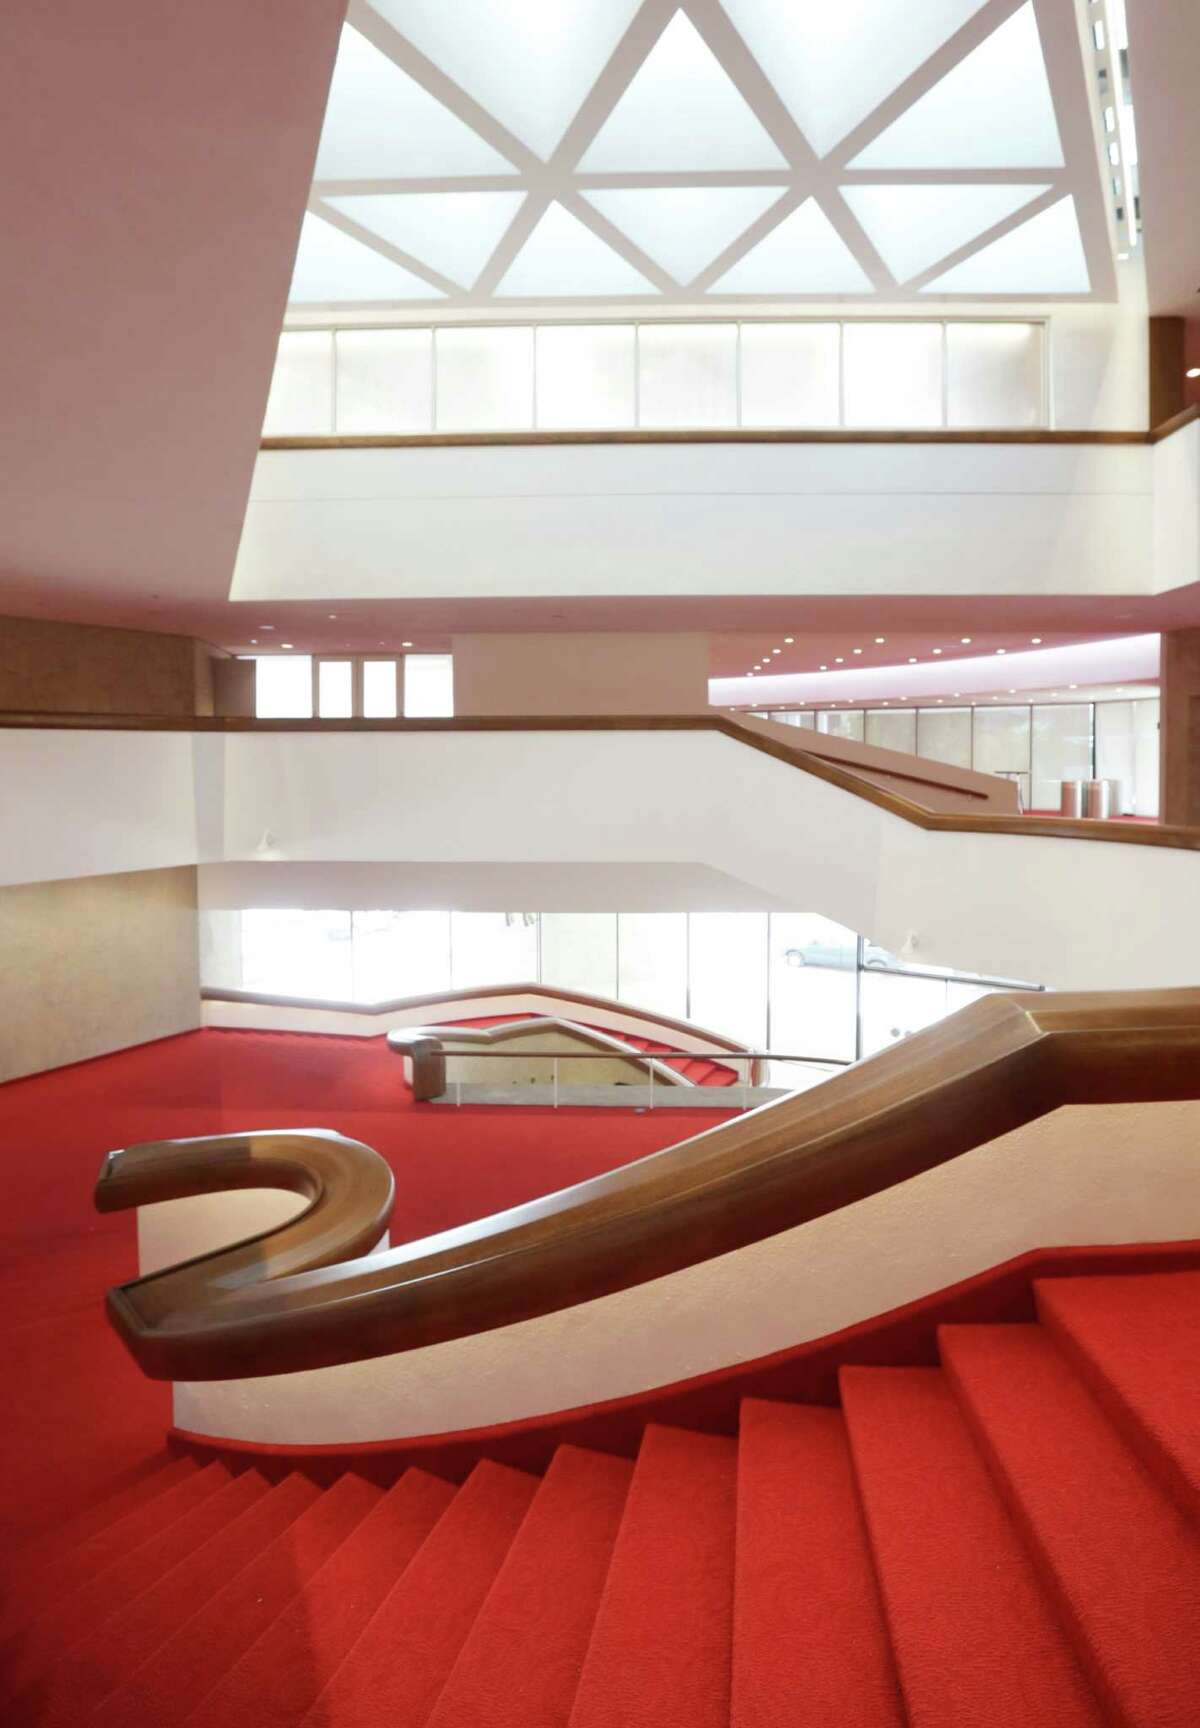 The newly renovated Alley Theatre is seen Wednesday, Sept. 16, 2015, in Houston. The Alley Theatre will complete its first major renovation since its opening in 1968. ( Jon Shapley / Houston Chronicle )